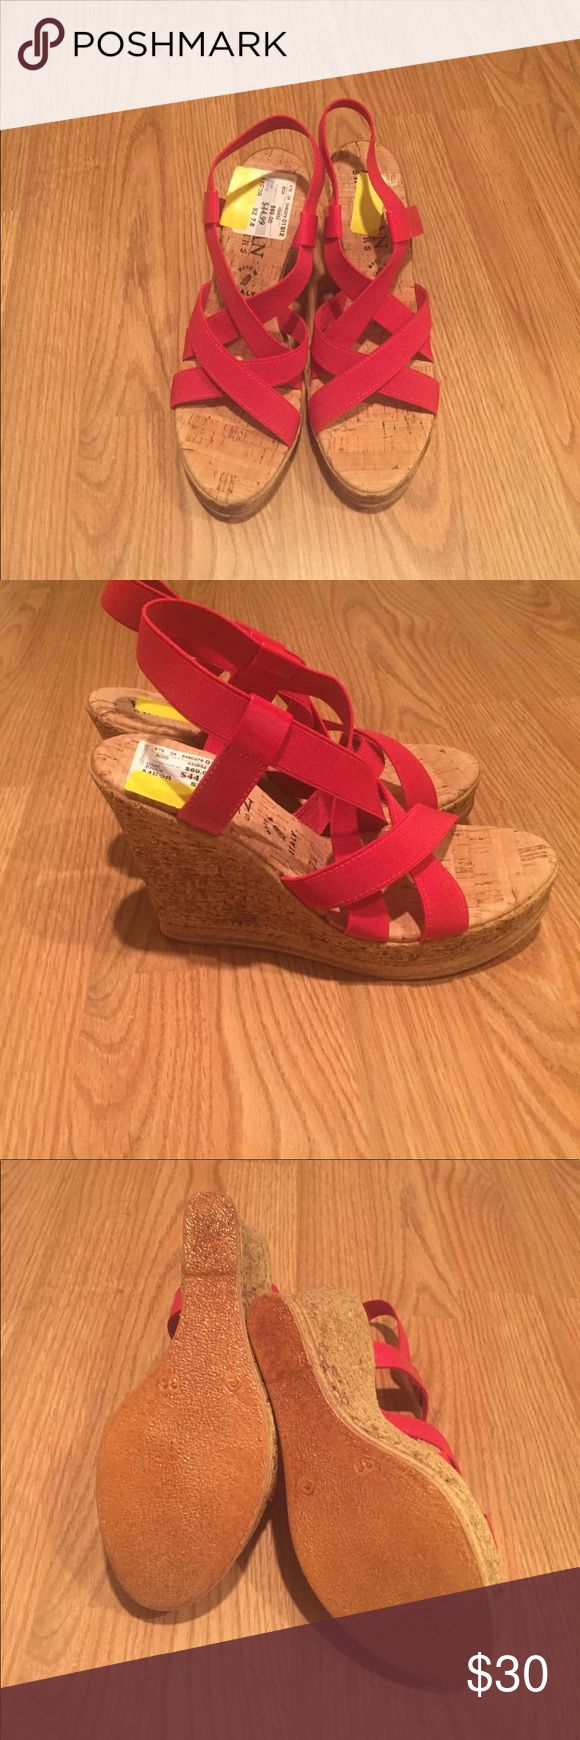 Red wedge shoes Italian Shoe Makers red wedge shoes 👠 Shoes Wedges